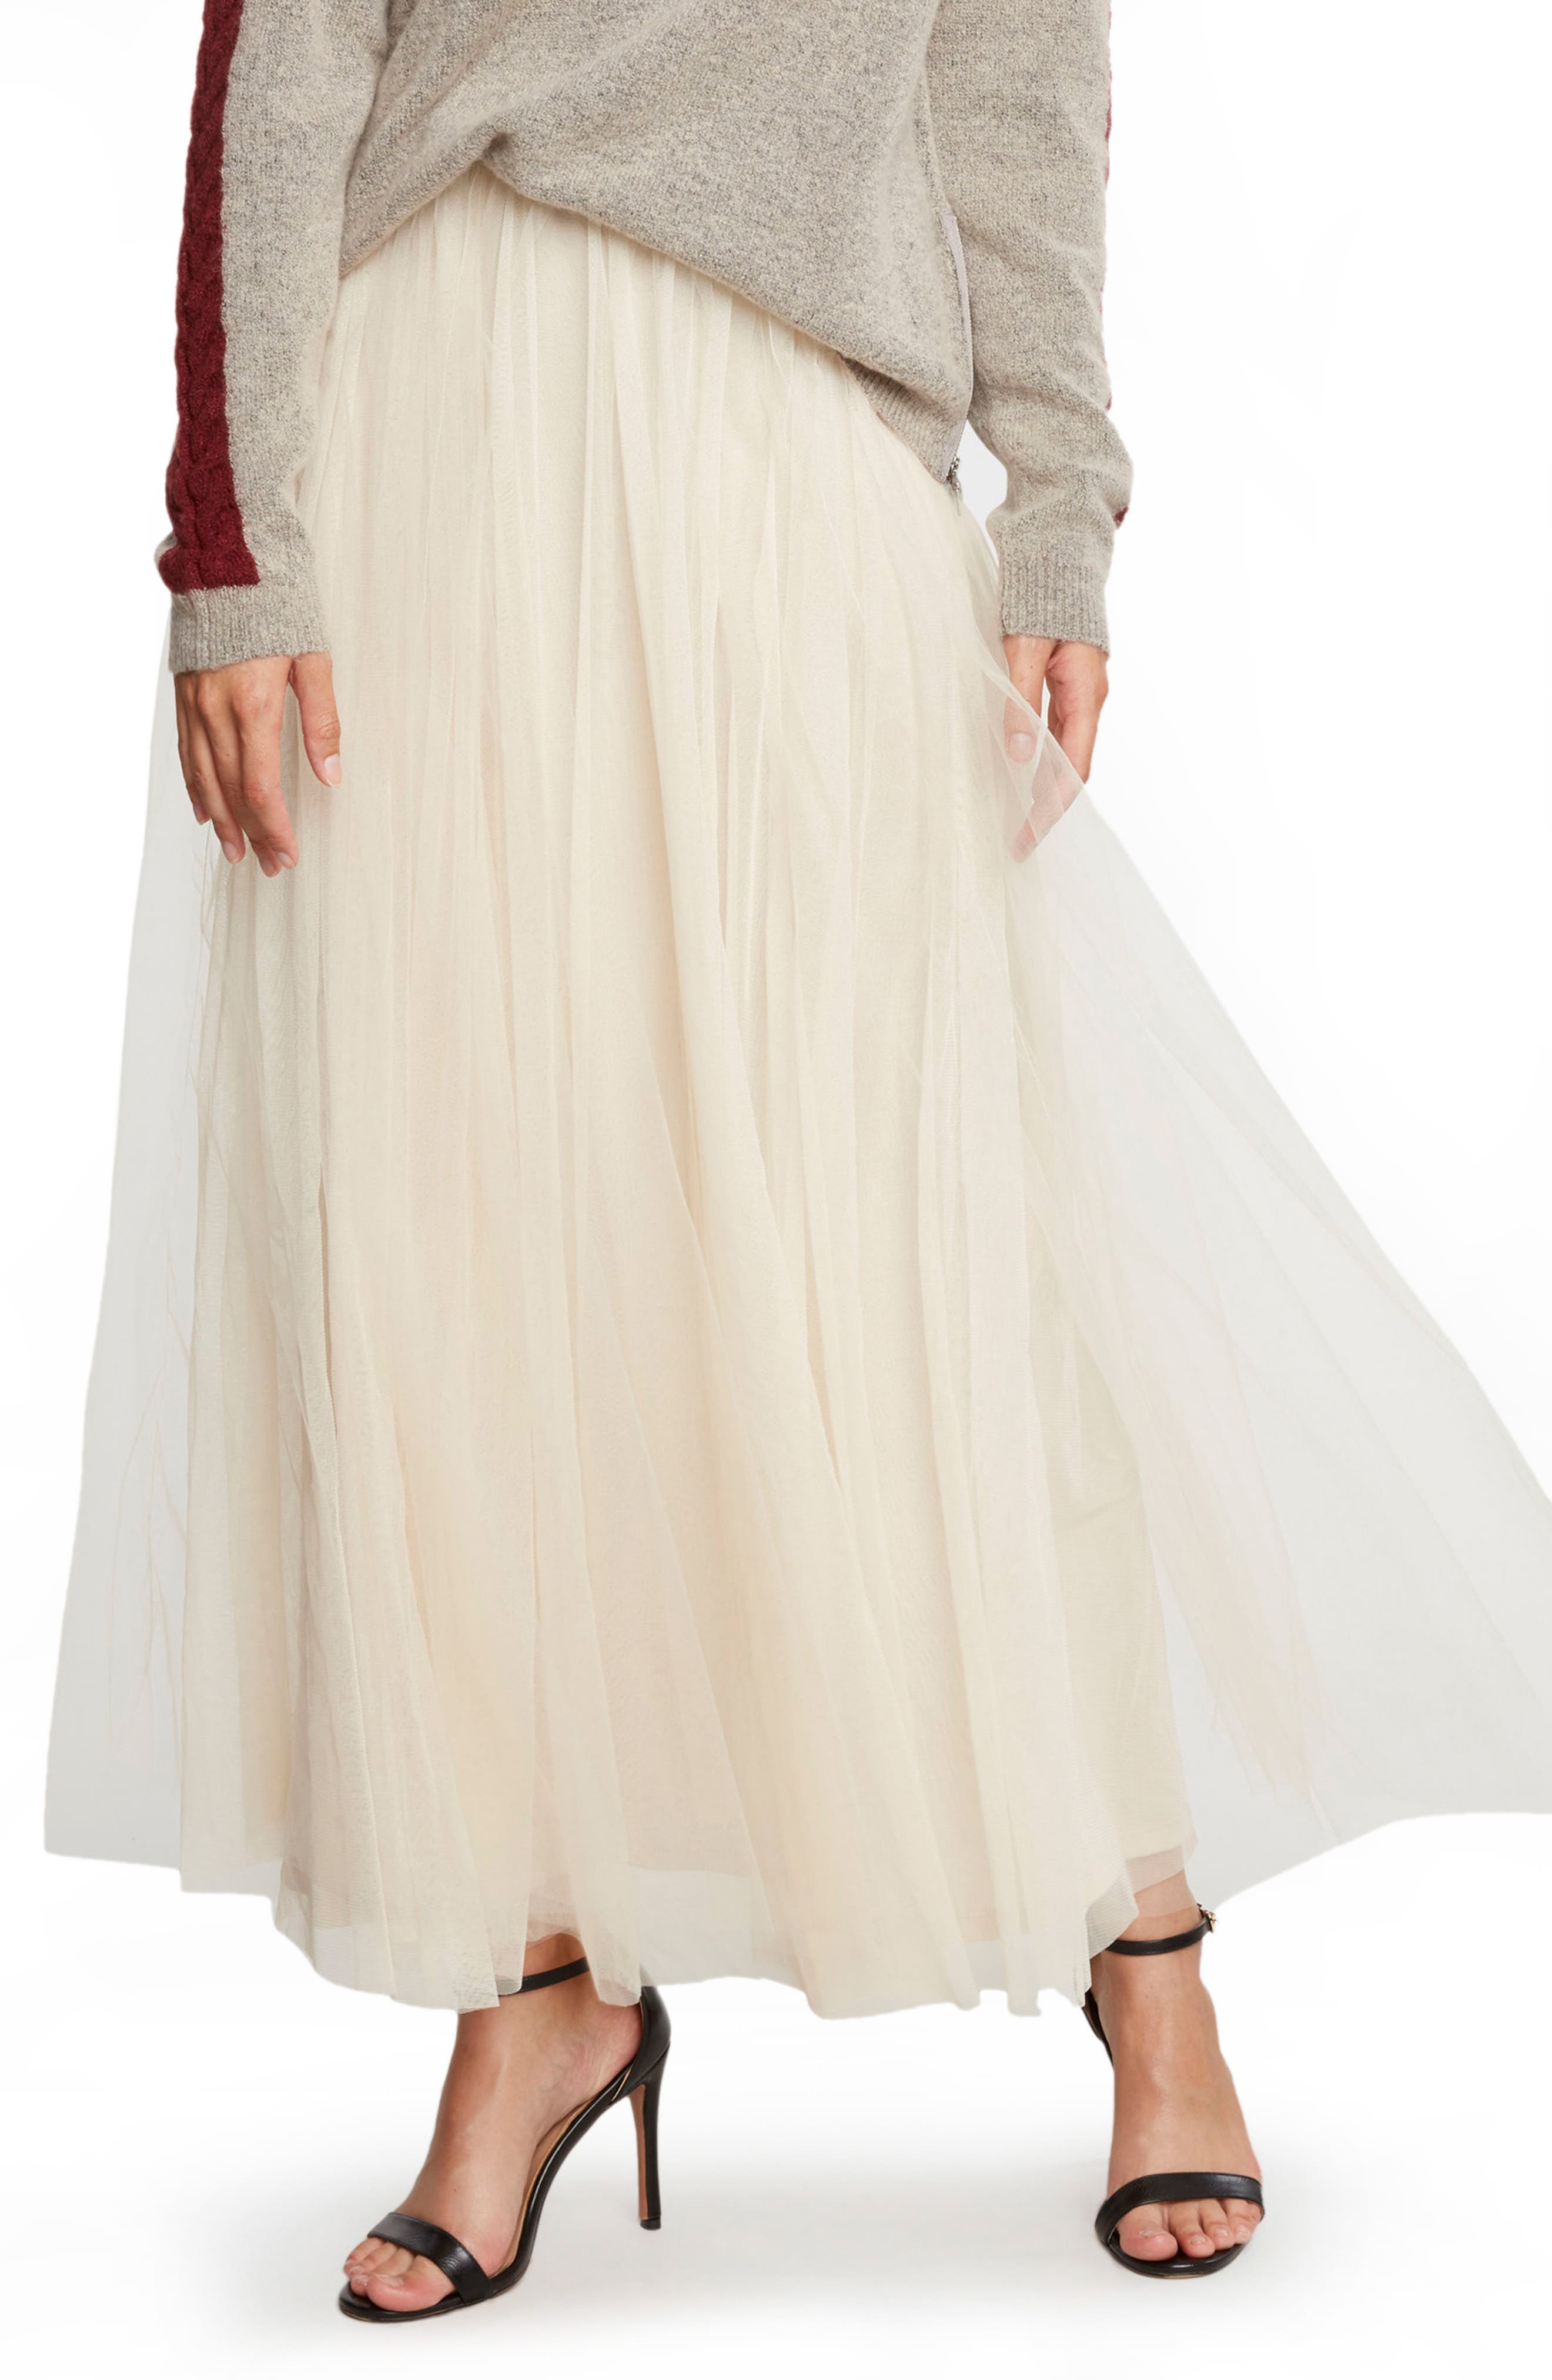 WILLOW & CLAY, Tulle Midi Skirt, Main thumbnail 1, color, 901